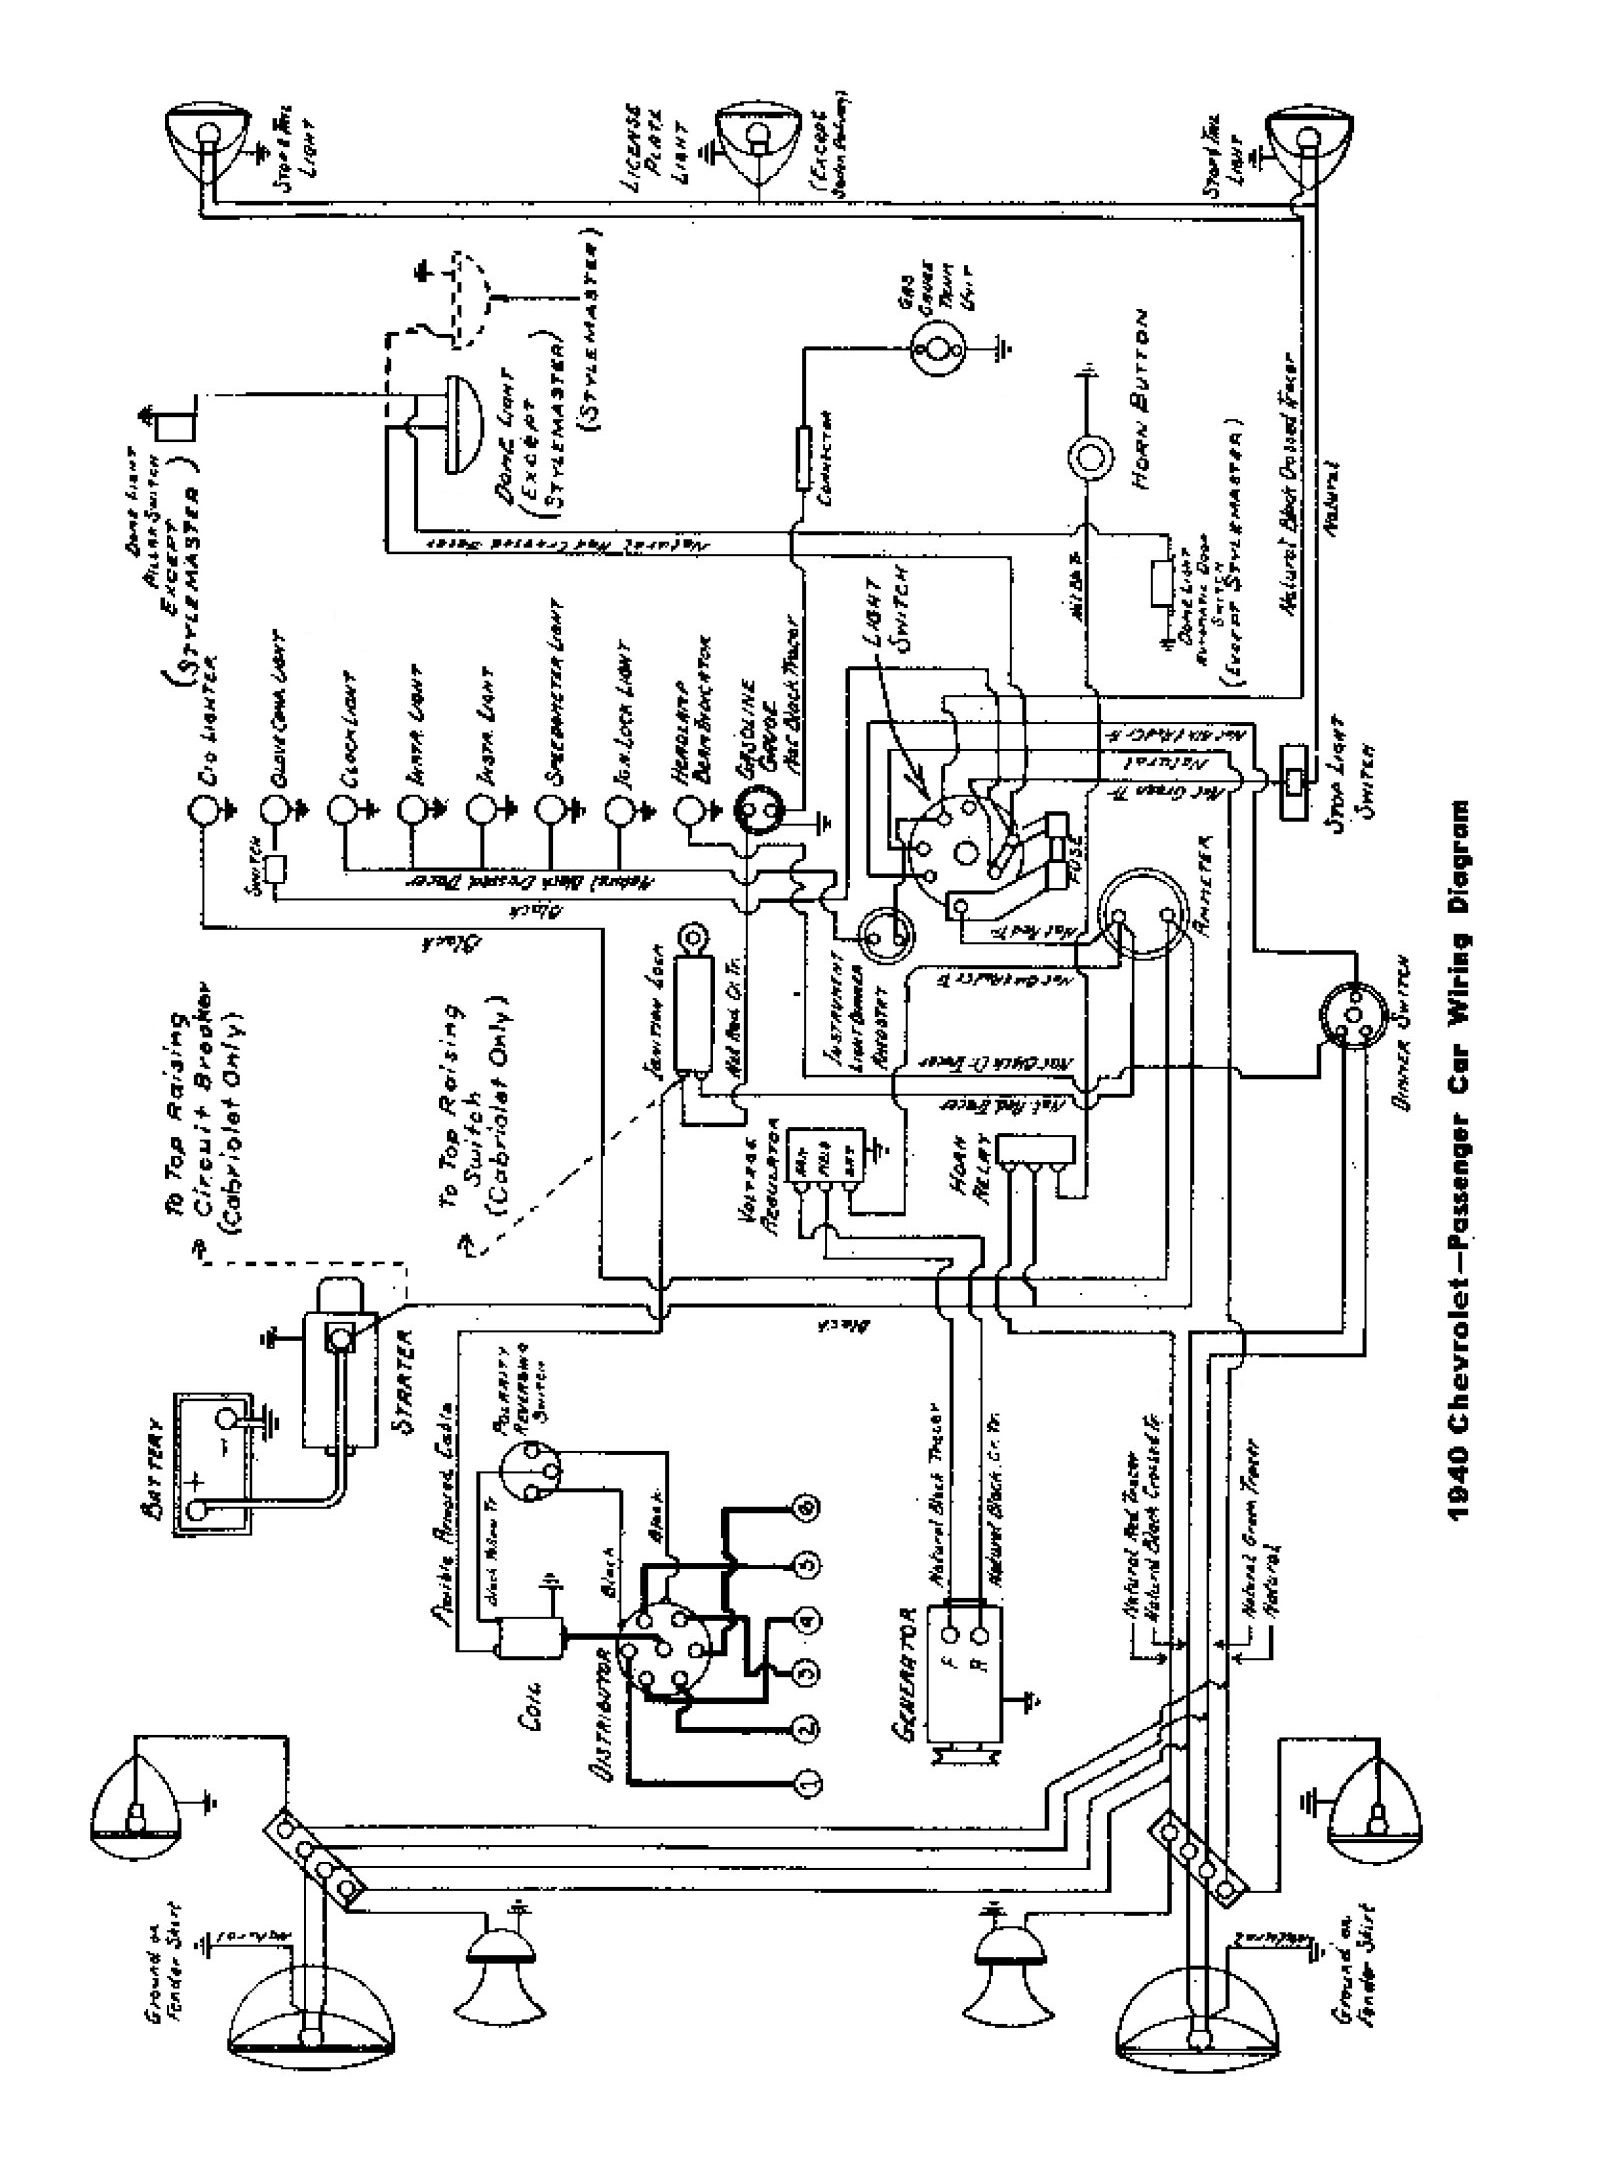 hight resolution of international tractor wiring harness wiring diagram repair guides 1957 international tractor wiring harness